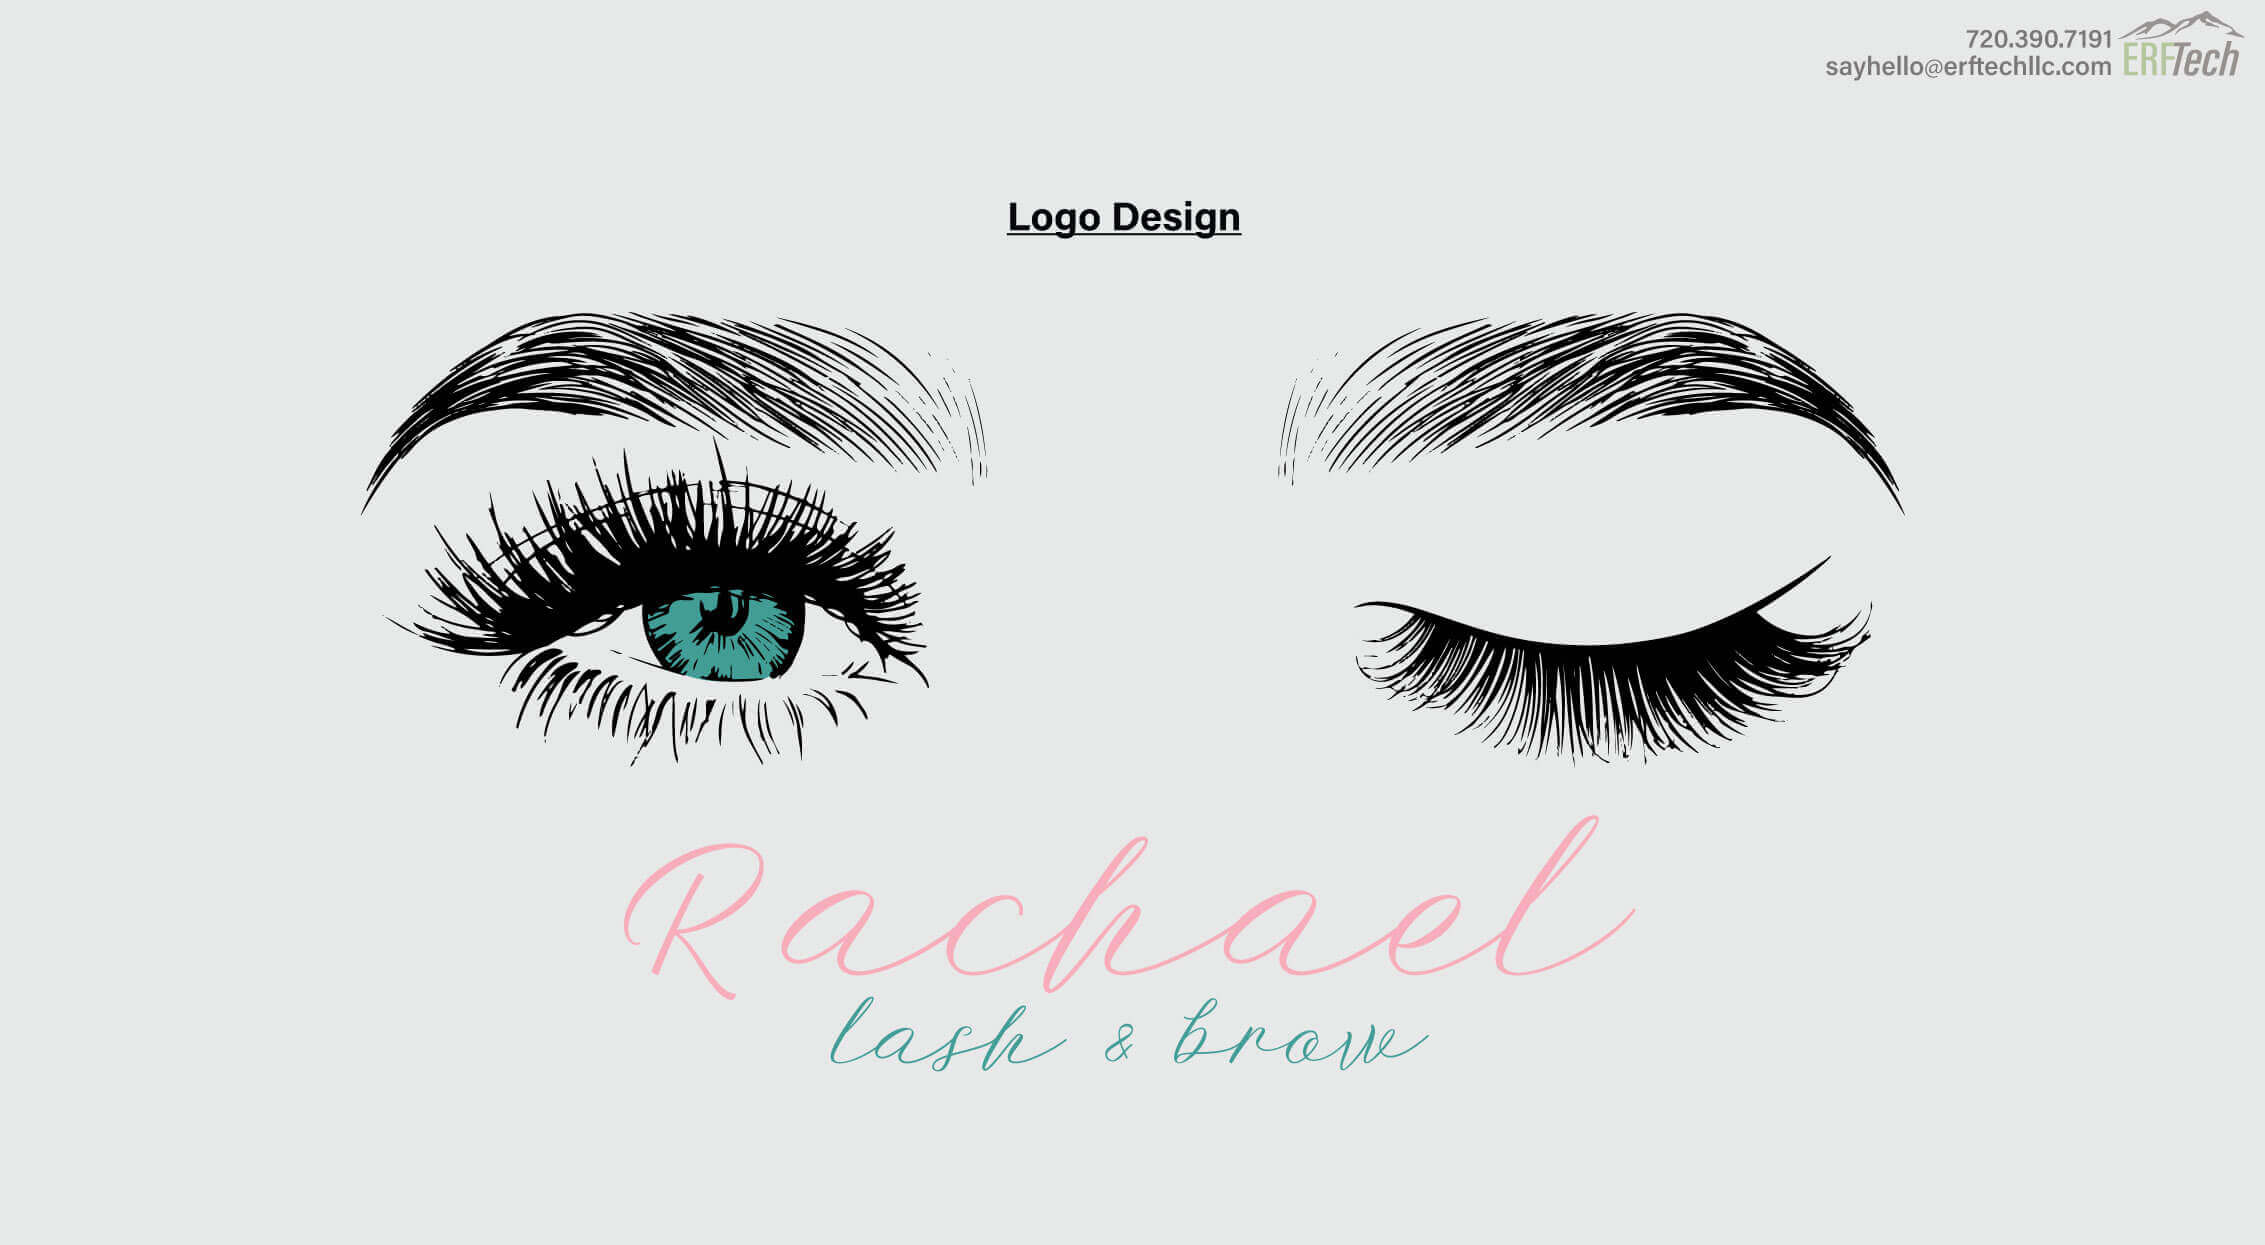 Logo Design for Rachael Lash& Brow in Denver, CO